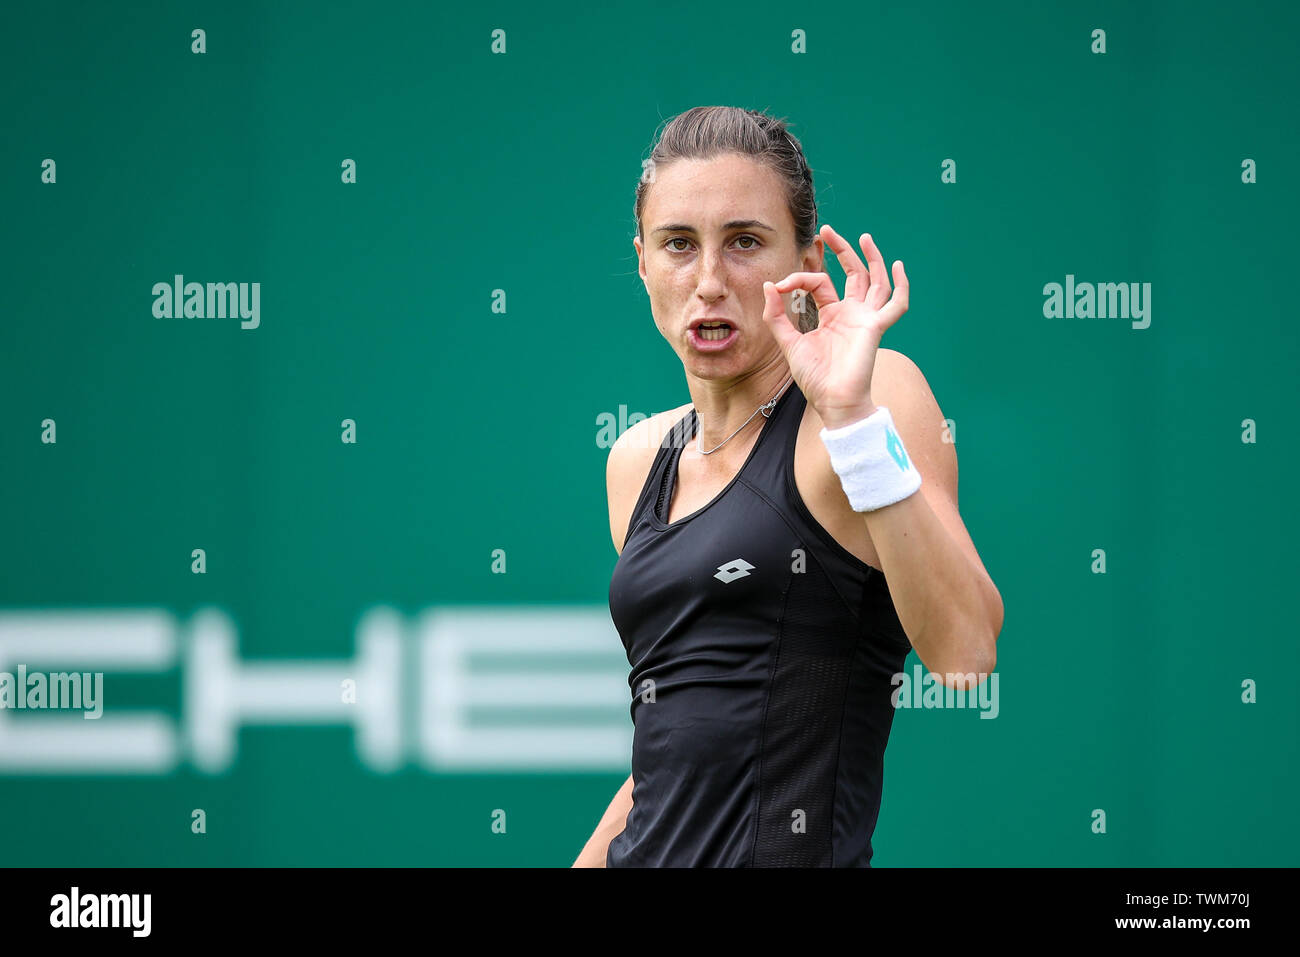 Edgbaston Priory Club, Birmingham, UK. 21st June, 2019. WTA Nature Valley Classic tennis tournament; Petra Martic (CRO) signals to her coach in her quarterfinal match against Jelena Ostapenko (LAT) Credit: Action Plus Sports/Alamy Live News Stock Photo